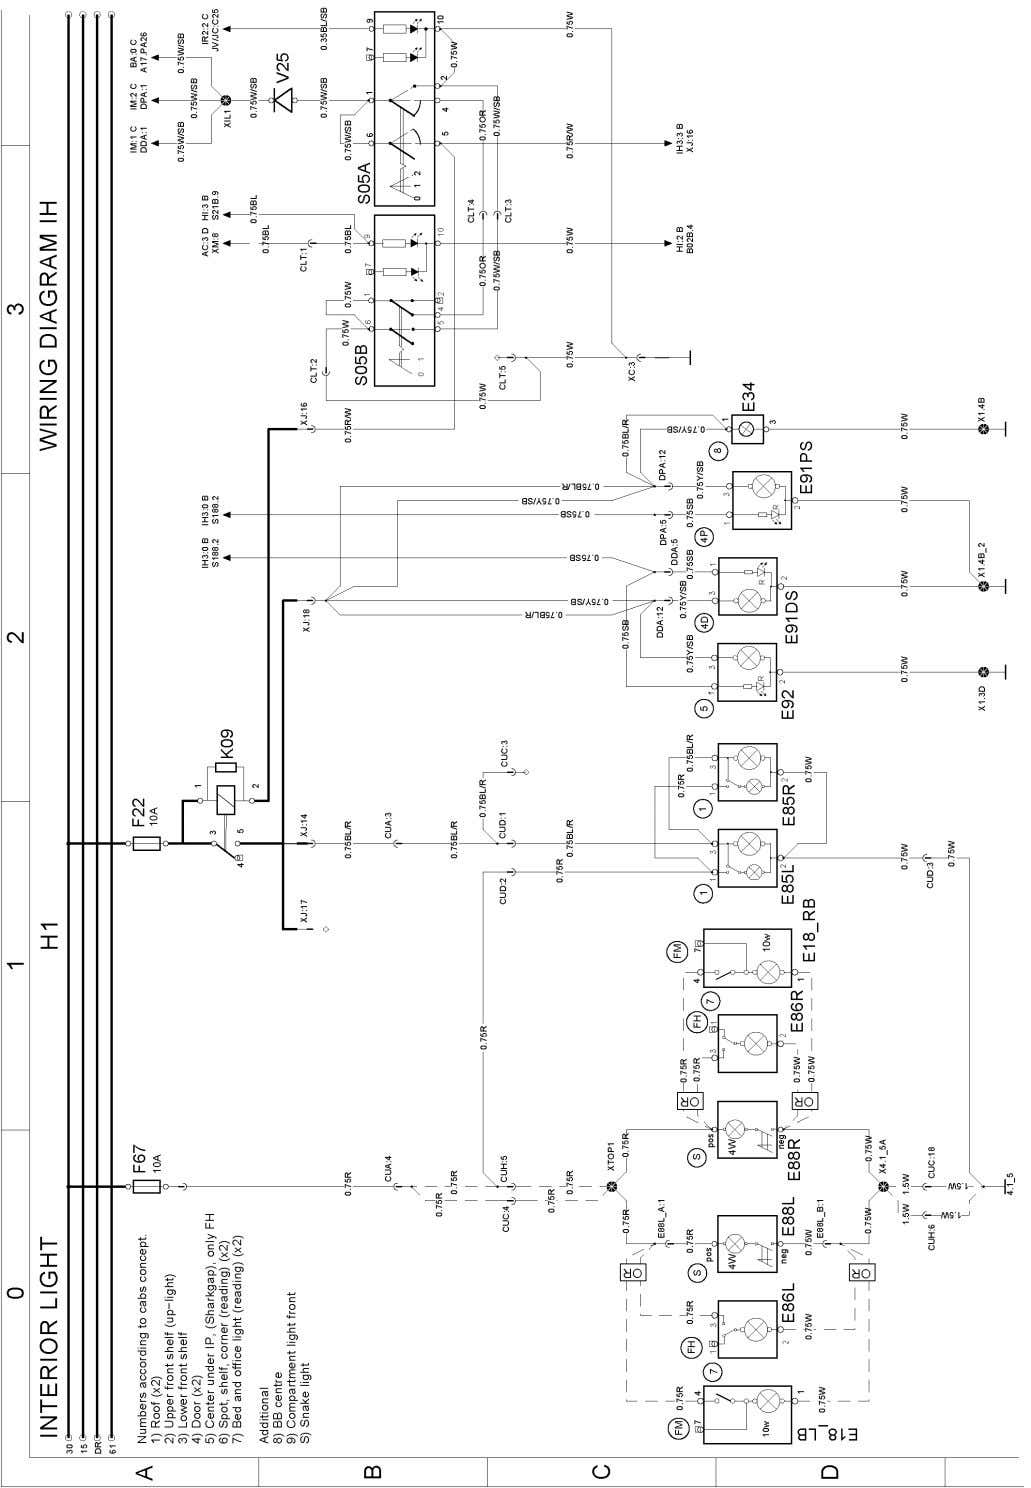 T3057310 Wiring diagram Page 89 (298)